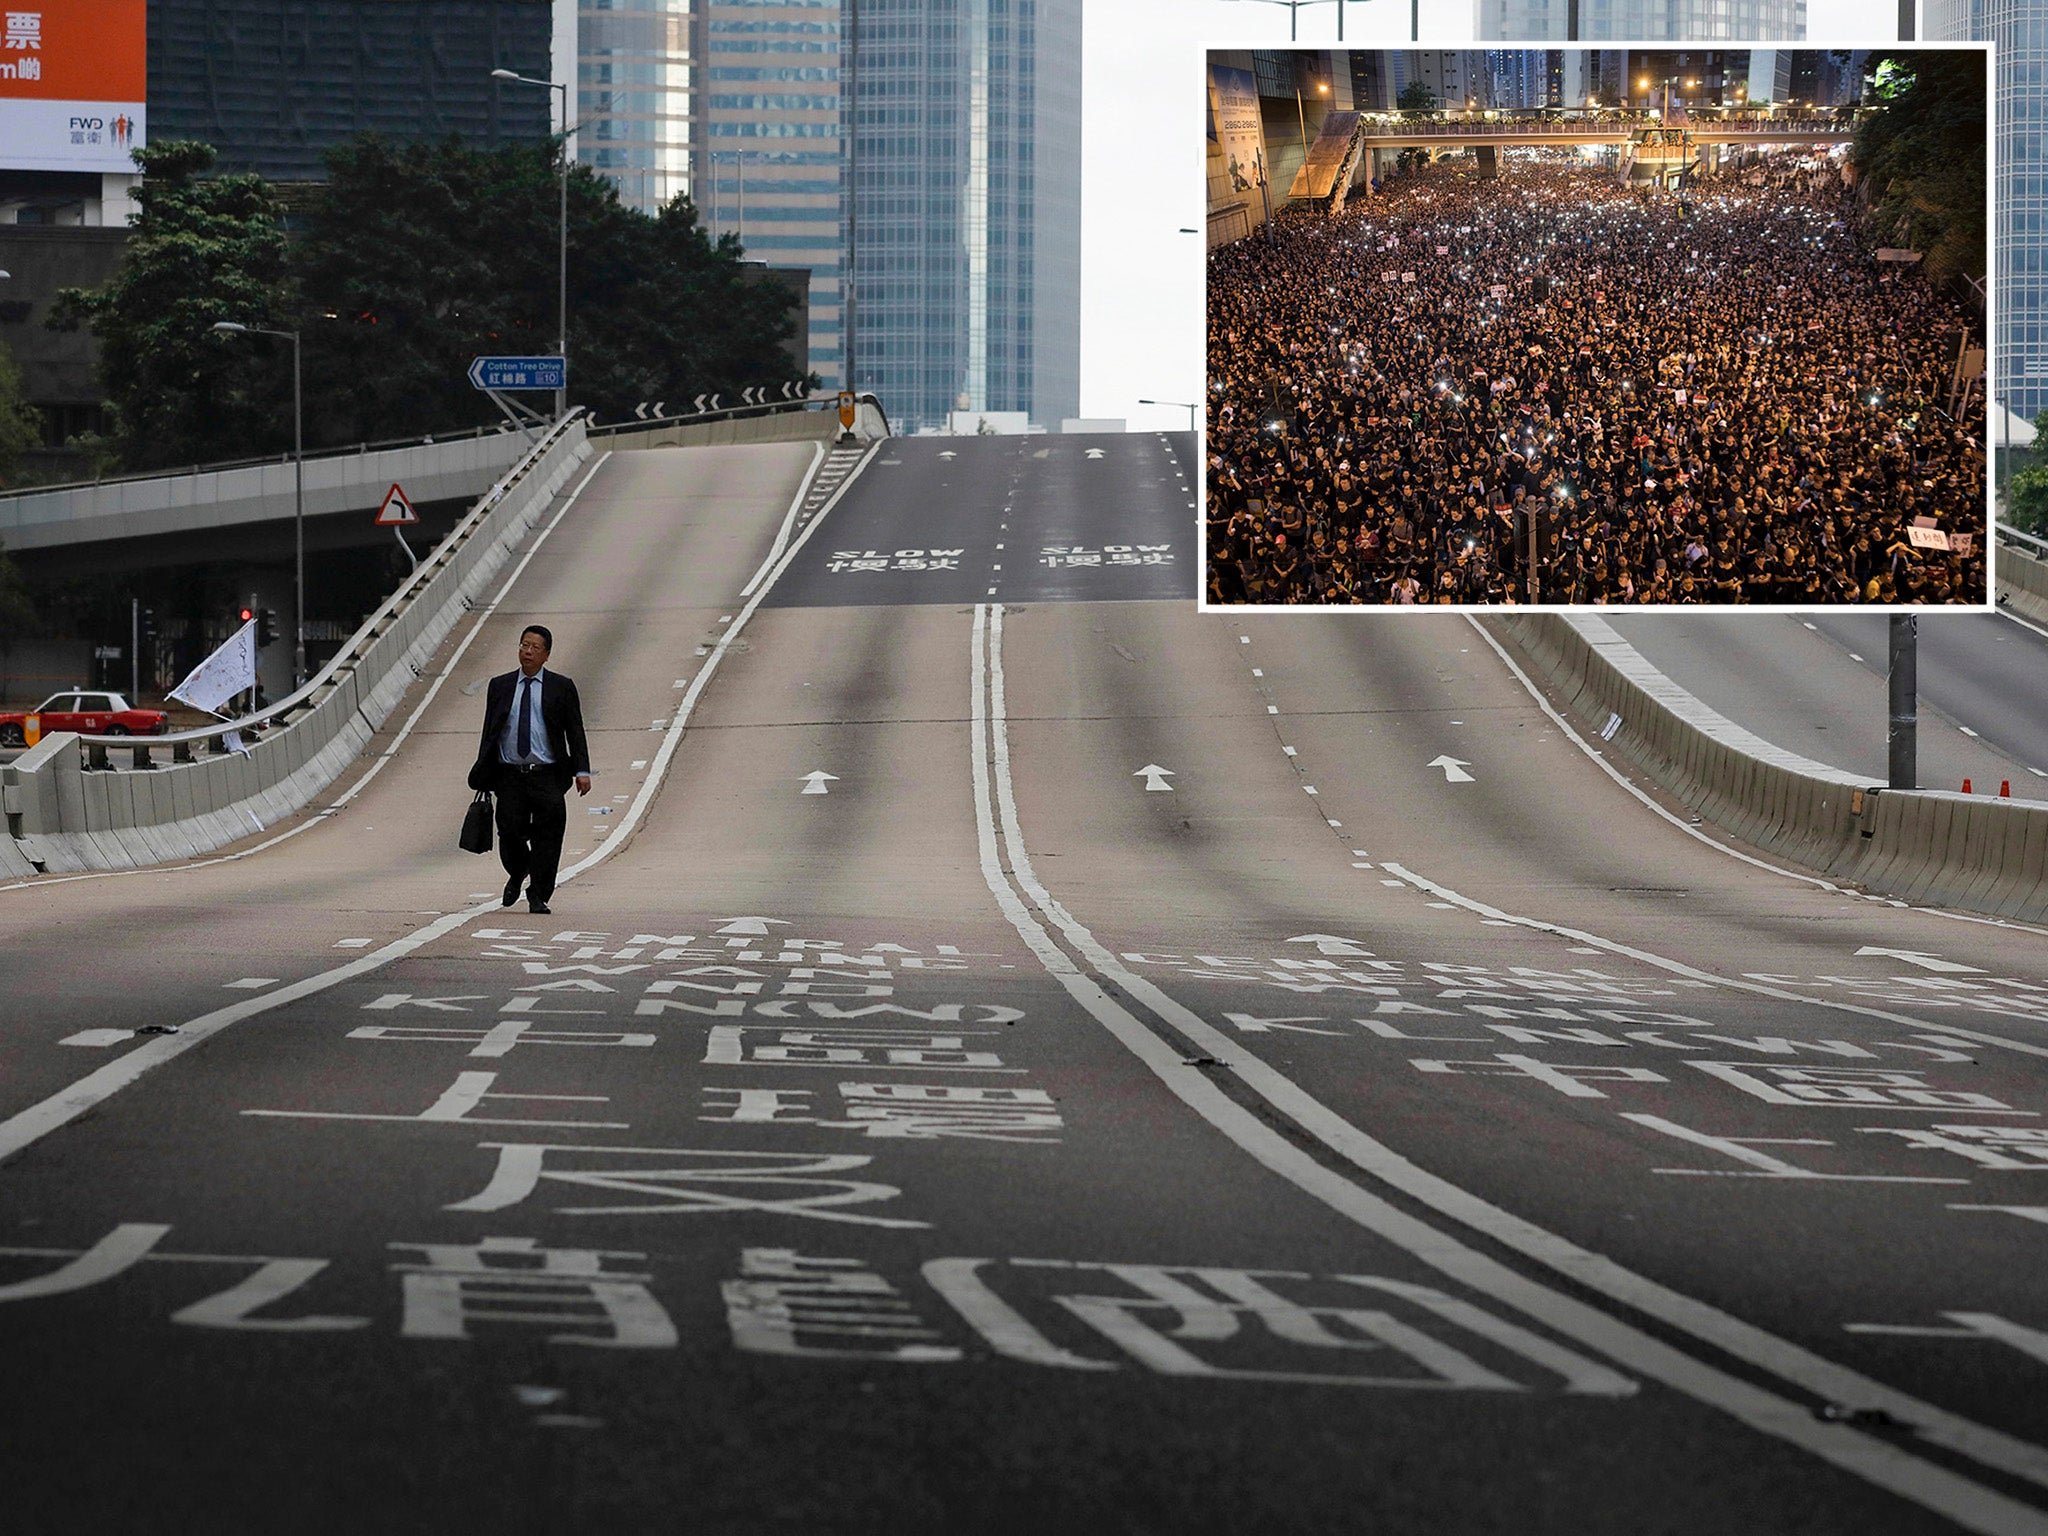 Hong Kong protesters praised for cleaning up streets after two million person march